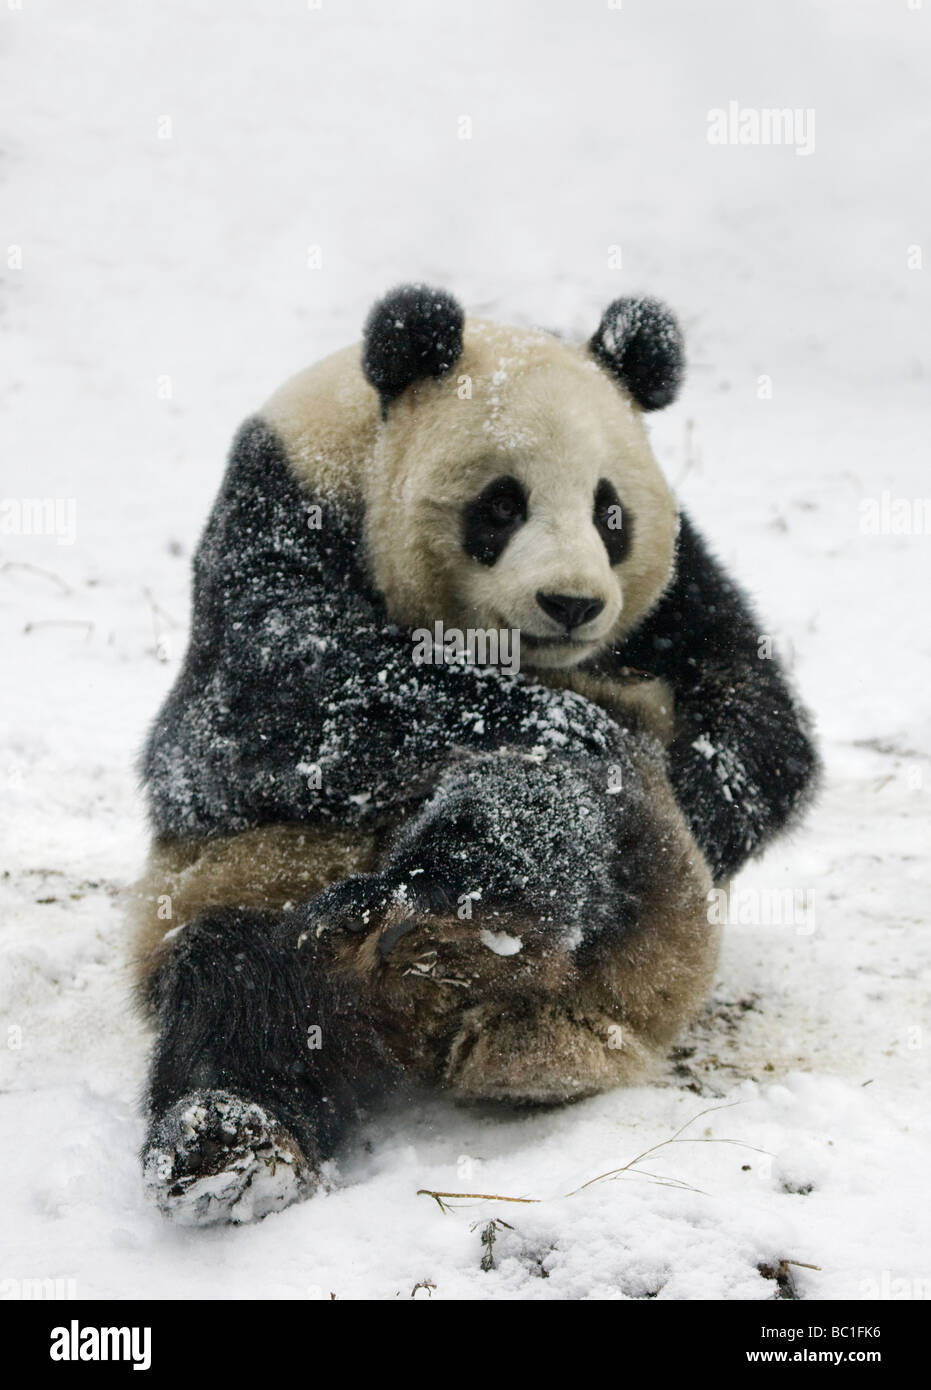 Giant panda on snow Wolong Sichuan China - Stock Image